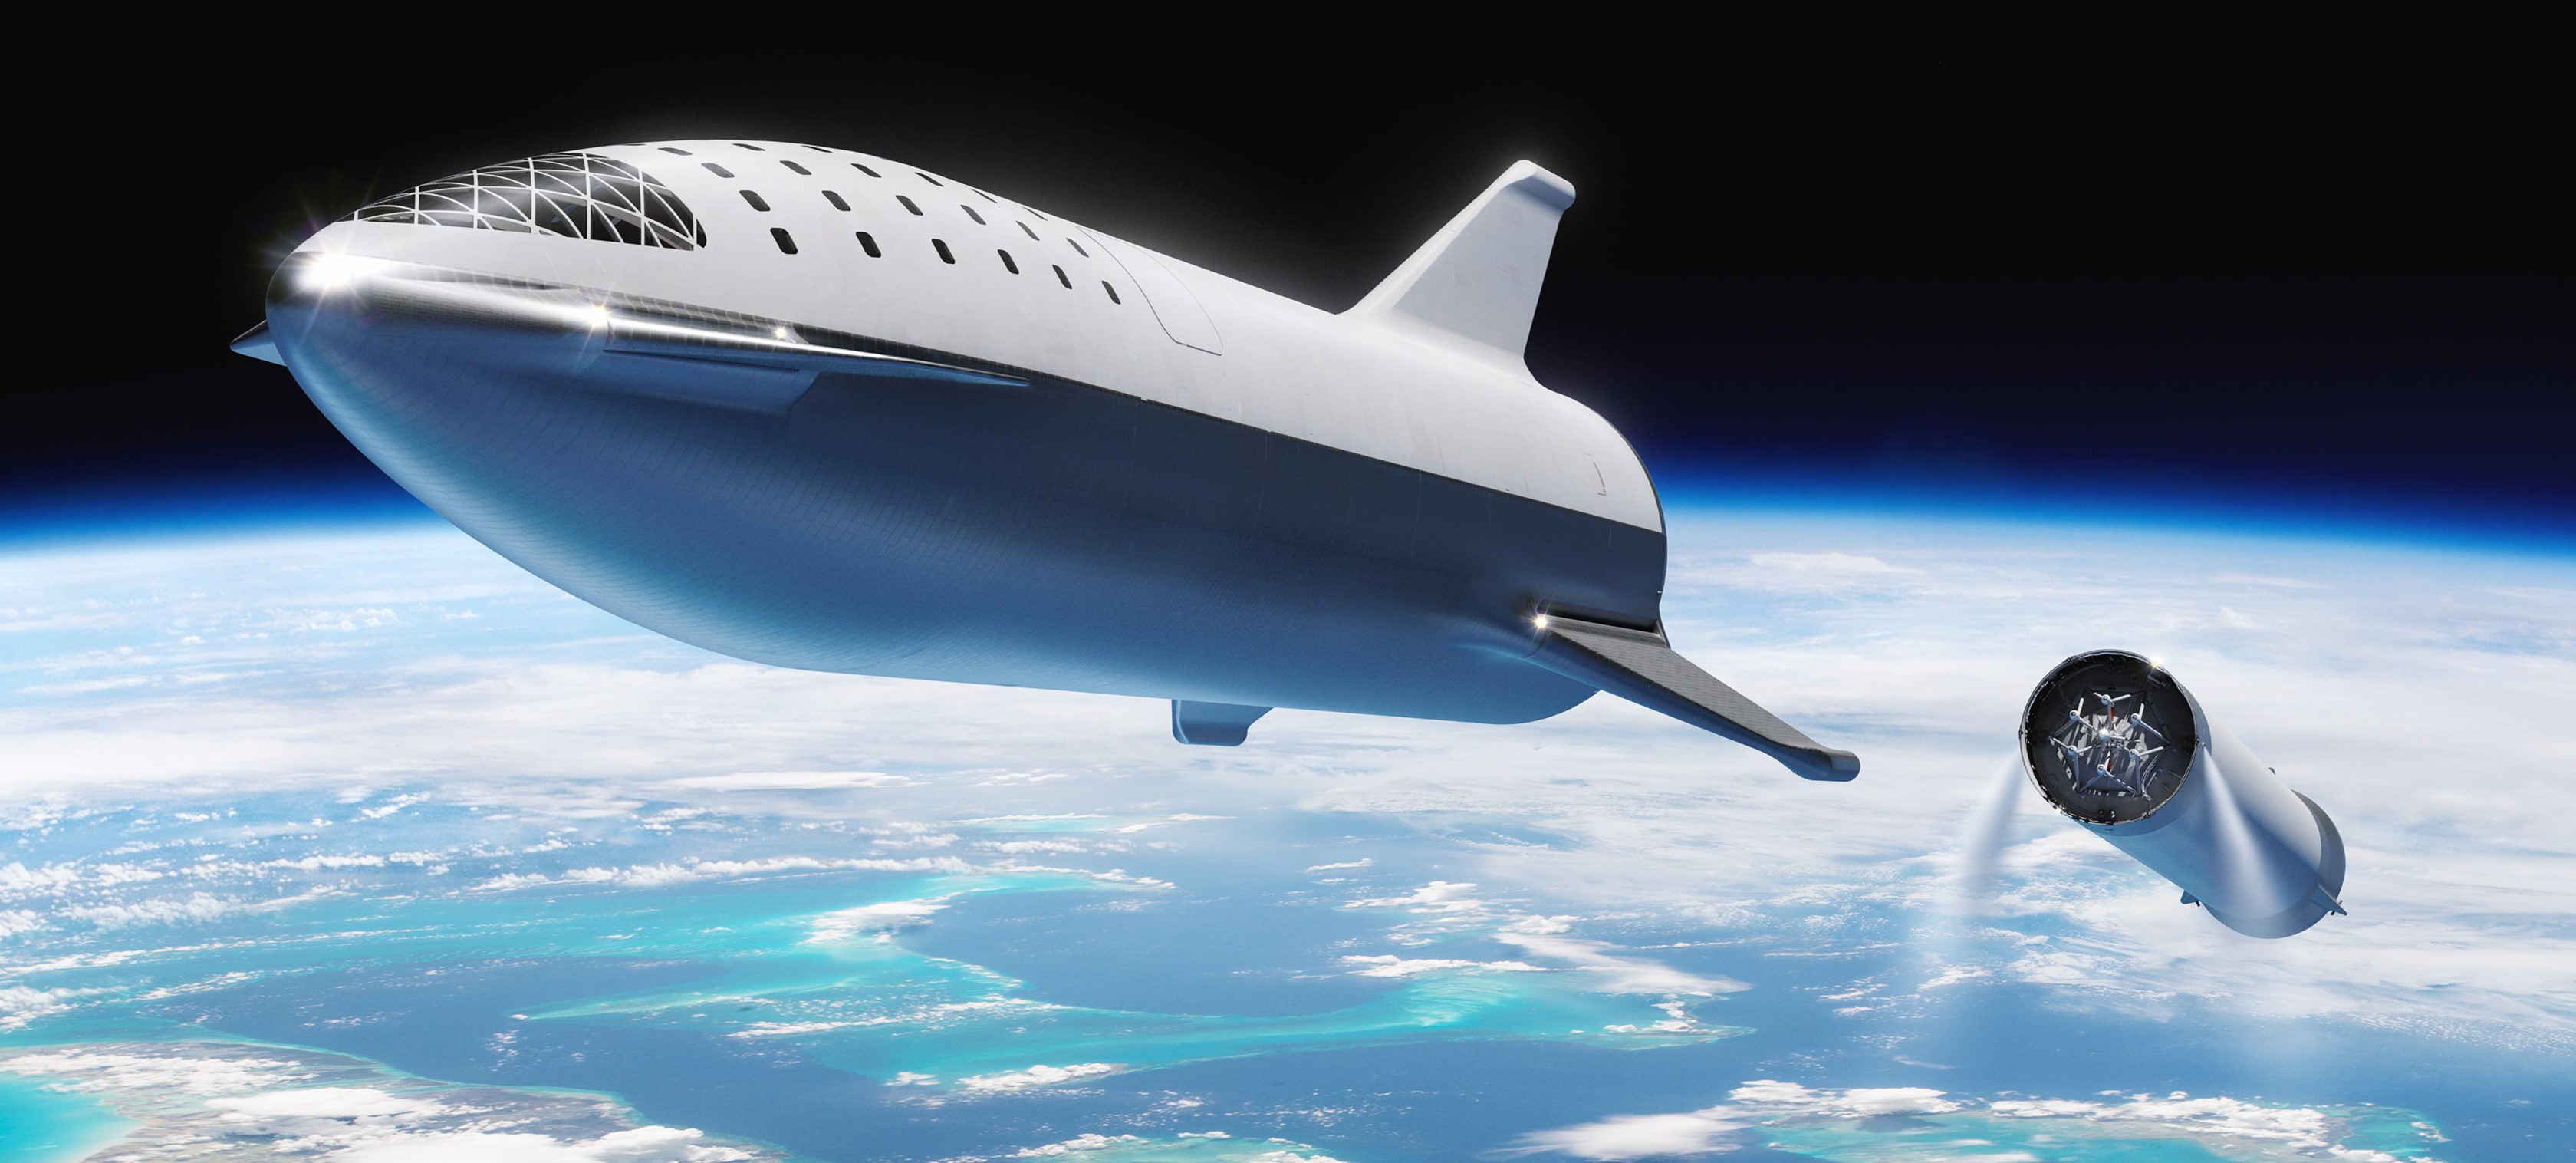 BFR 2018 spaceship and booster sep (SpaceX) crop